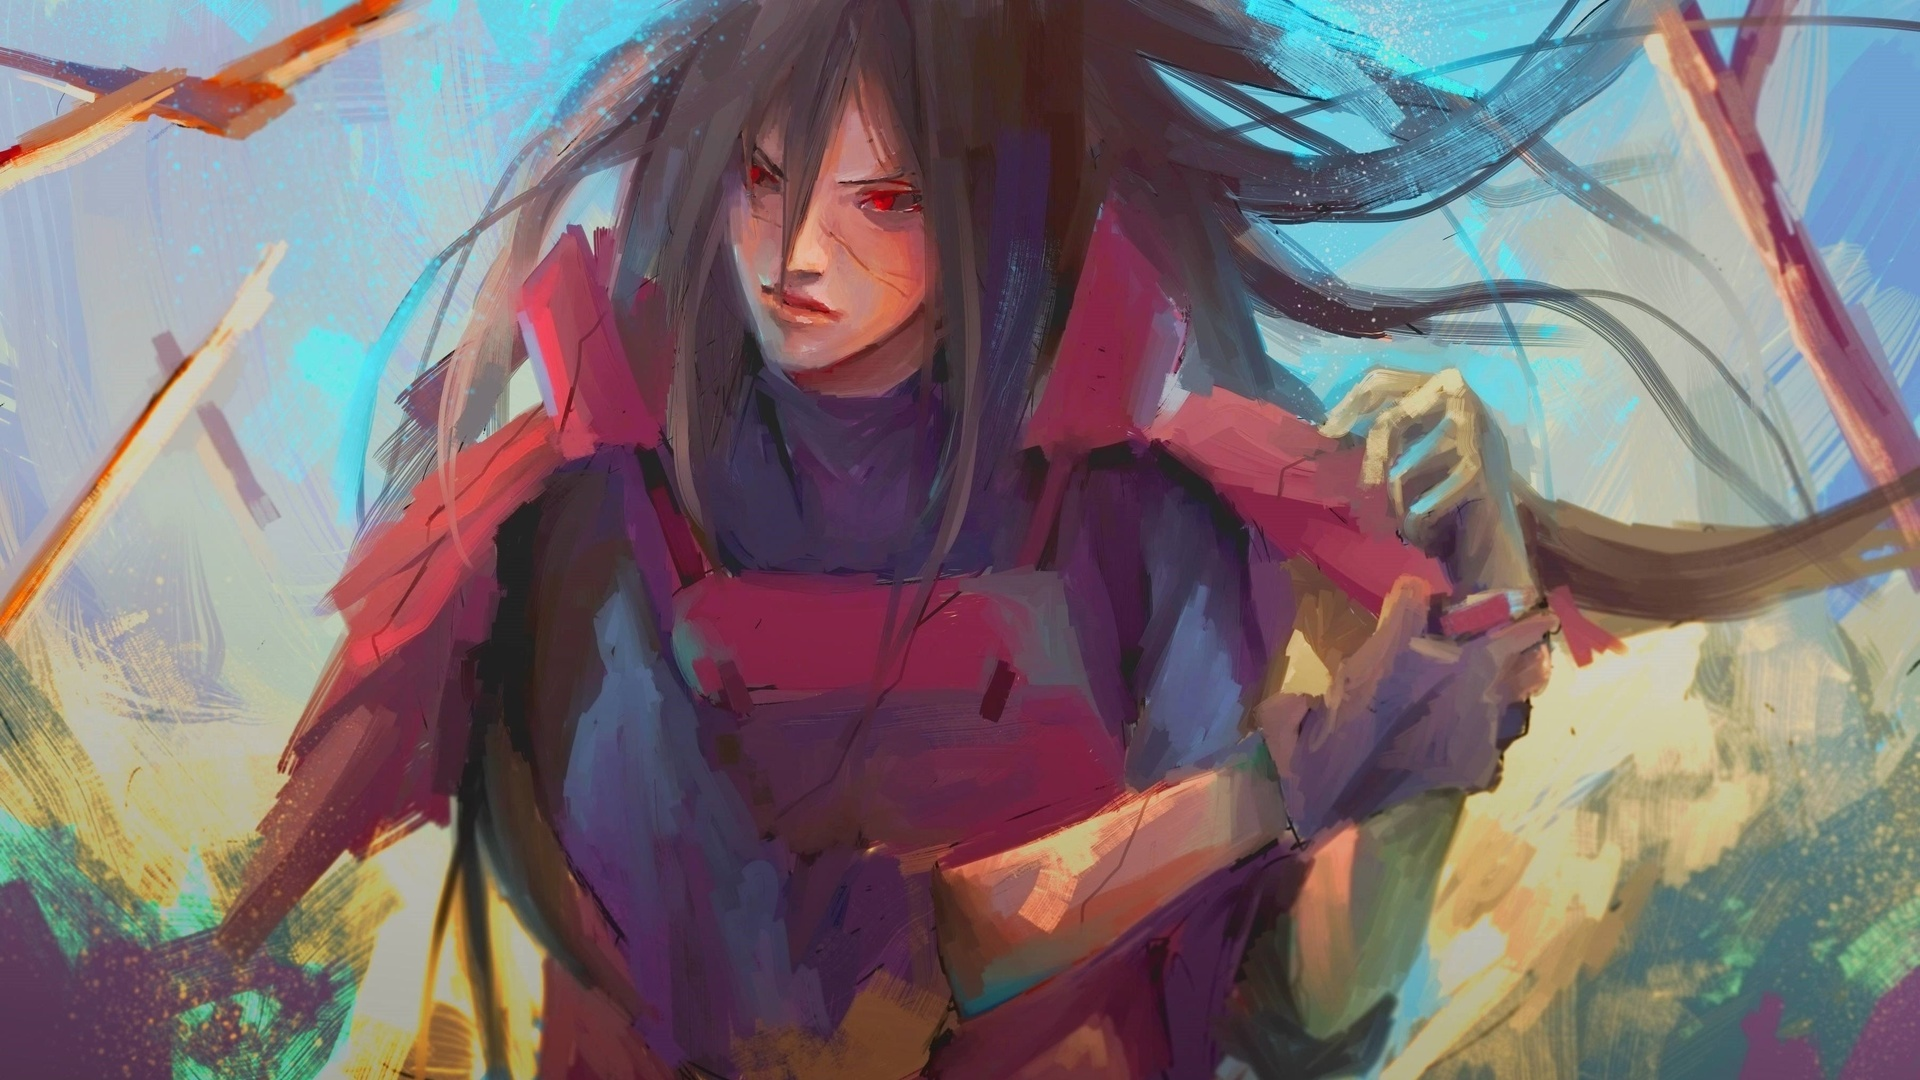 1920x1080 Madara Uchiha Naruto Laptop Full Hd 1080p Hd 4k Wallpapers Images Backgrounds Photos And Pictures